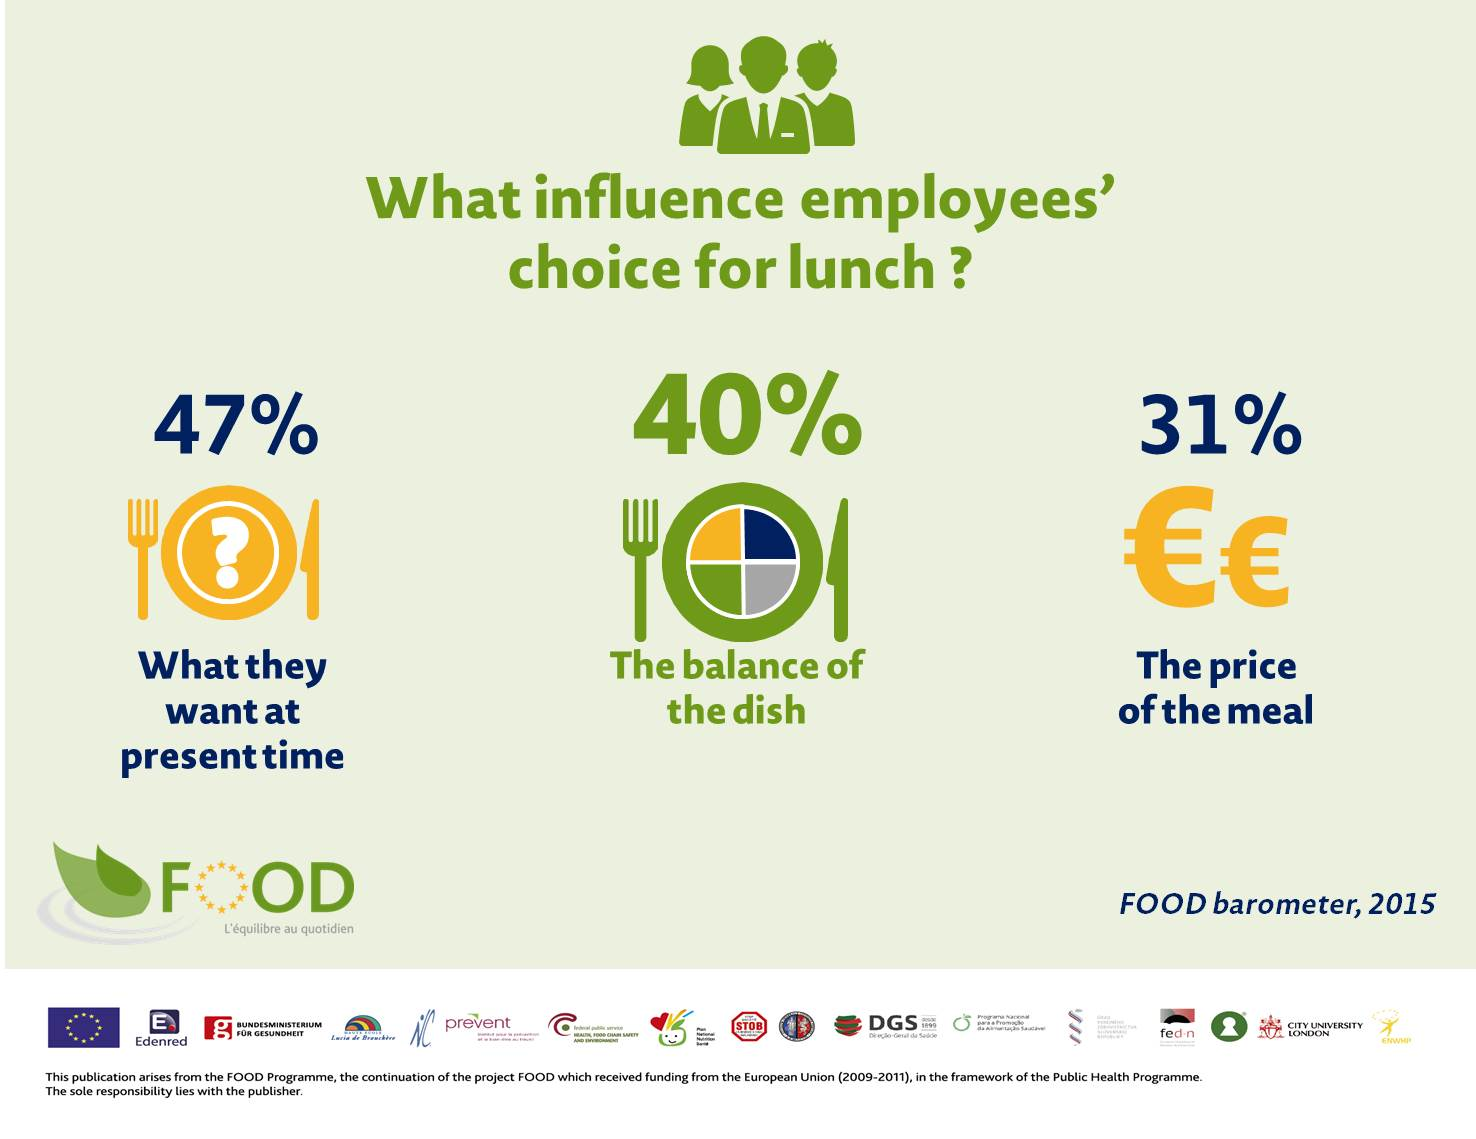 2015-FOOD-barometer_Results-employees